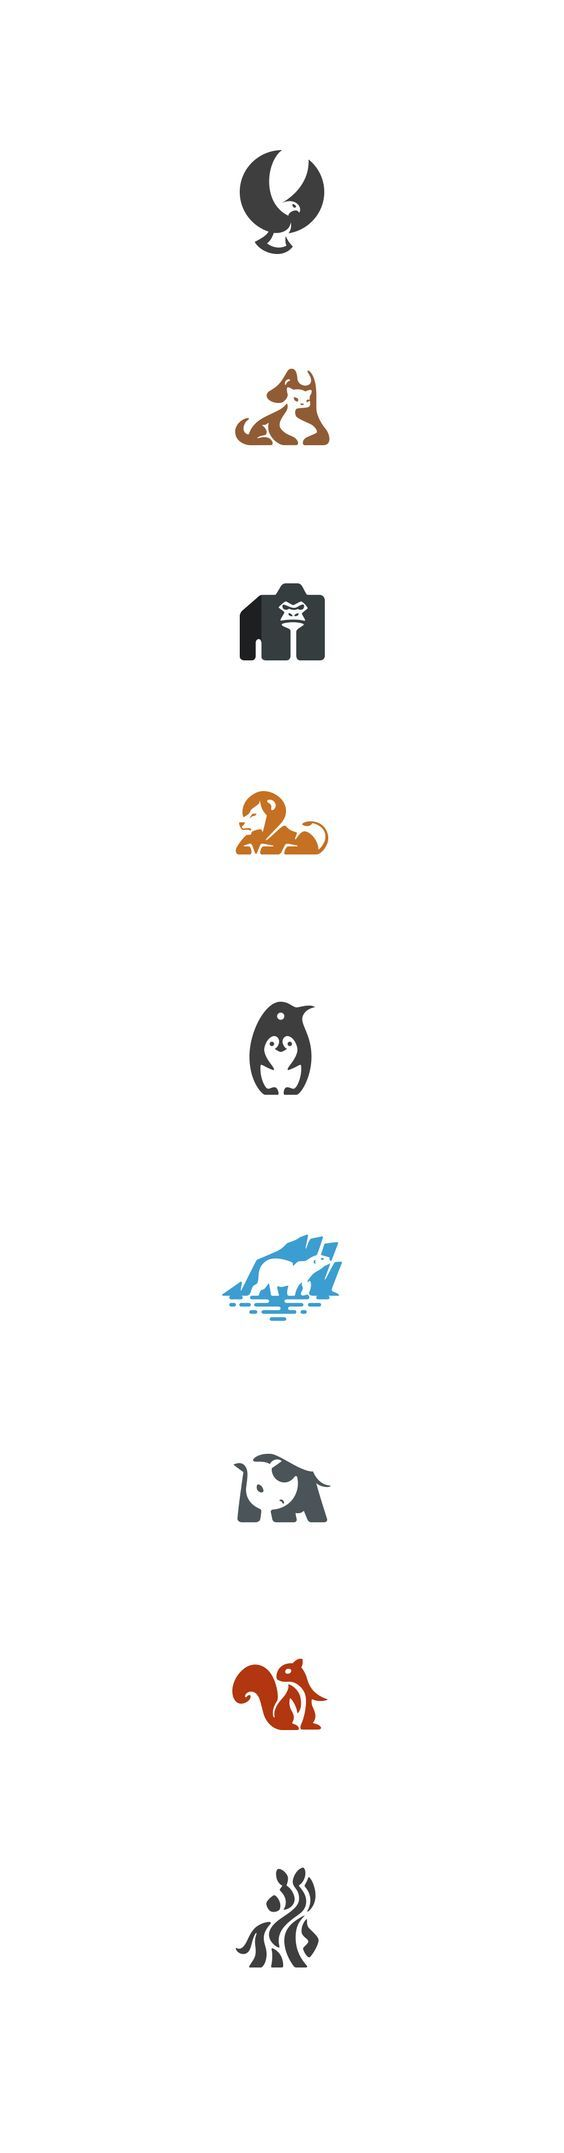 Fantastic negative space illustrations! These are all so clever.: